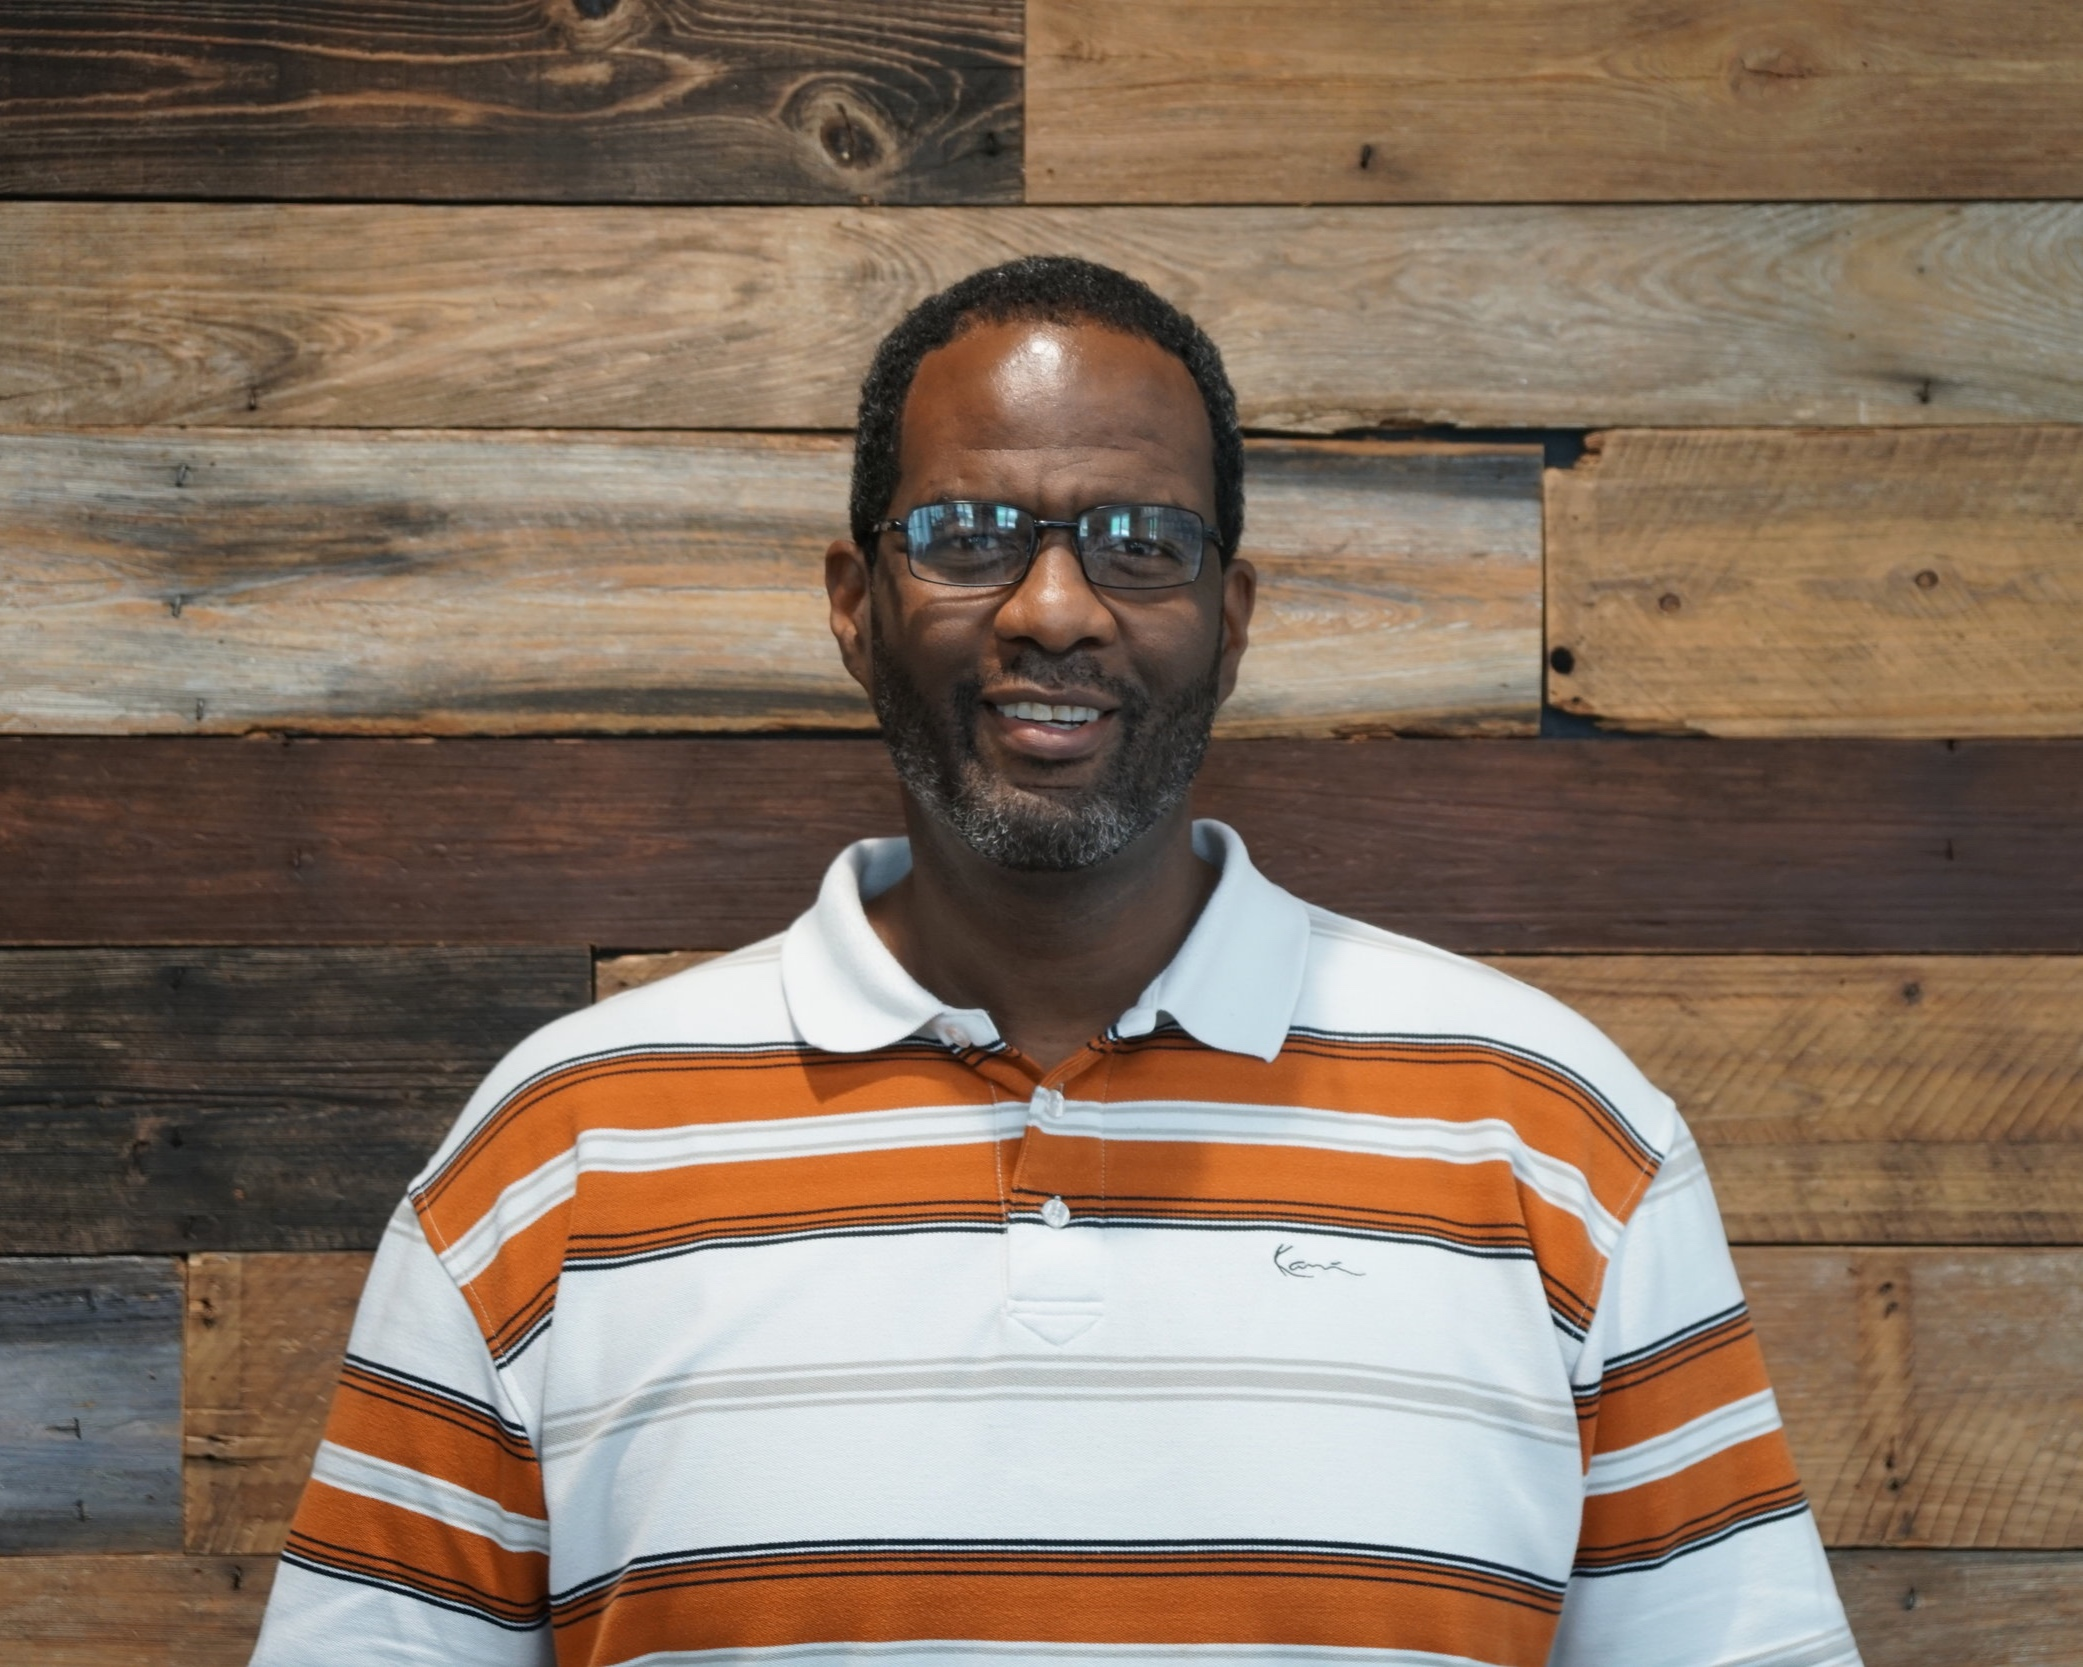 """Pastor Reggie Green - YouthReggie moved to Sarasota in 2004 after playing college and pro football (Florida Gators/ Denver Broncos). He has attended CCS for over 7 years and has been on staff as our Youth Pastor since 2016. Reggie and his wife Sara have 4 girls.""""I enjoy listening to sermons, watching football and watching amazon prime shows with my wife"""""""